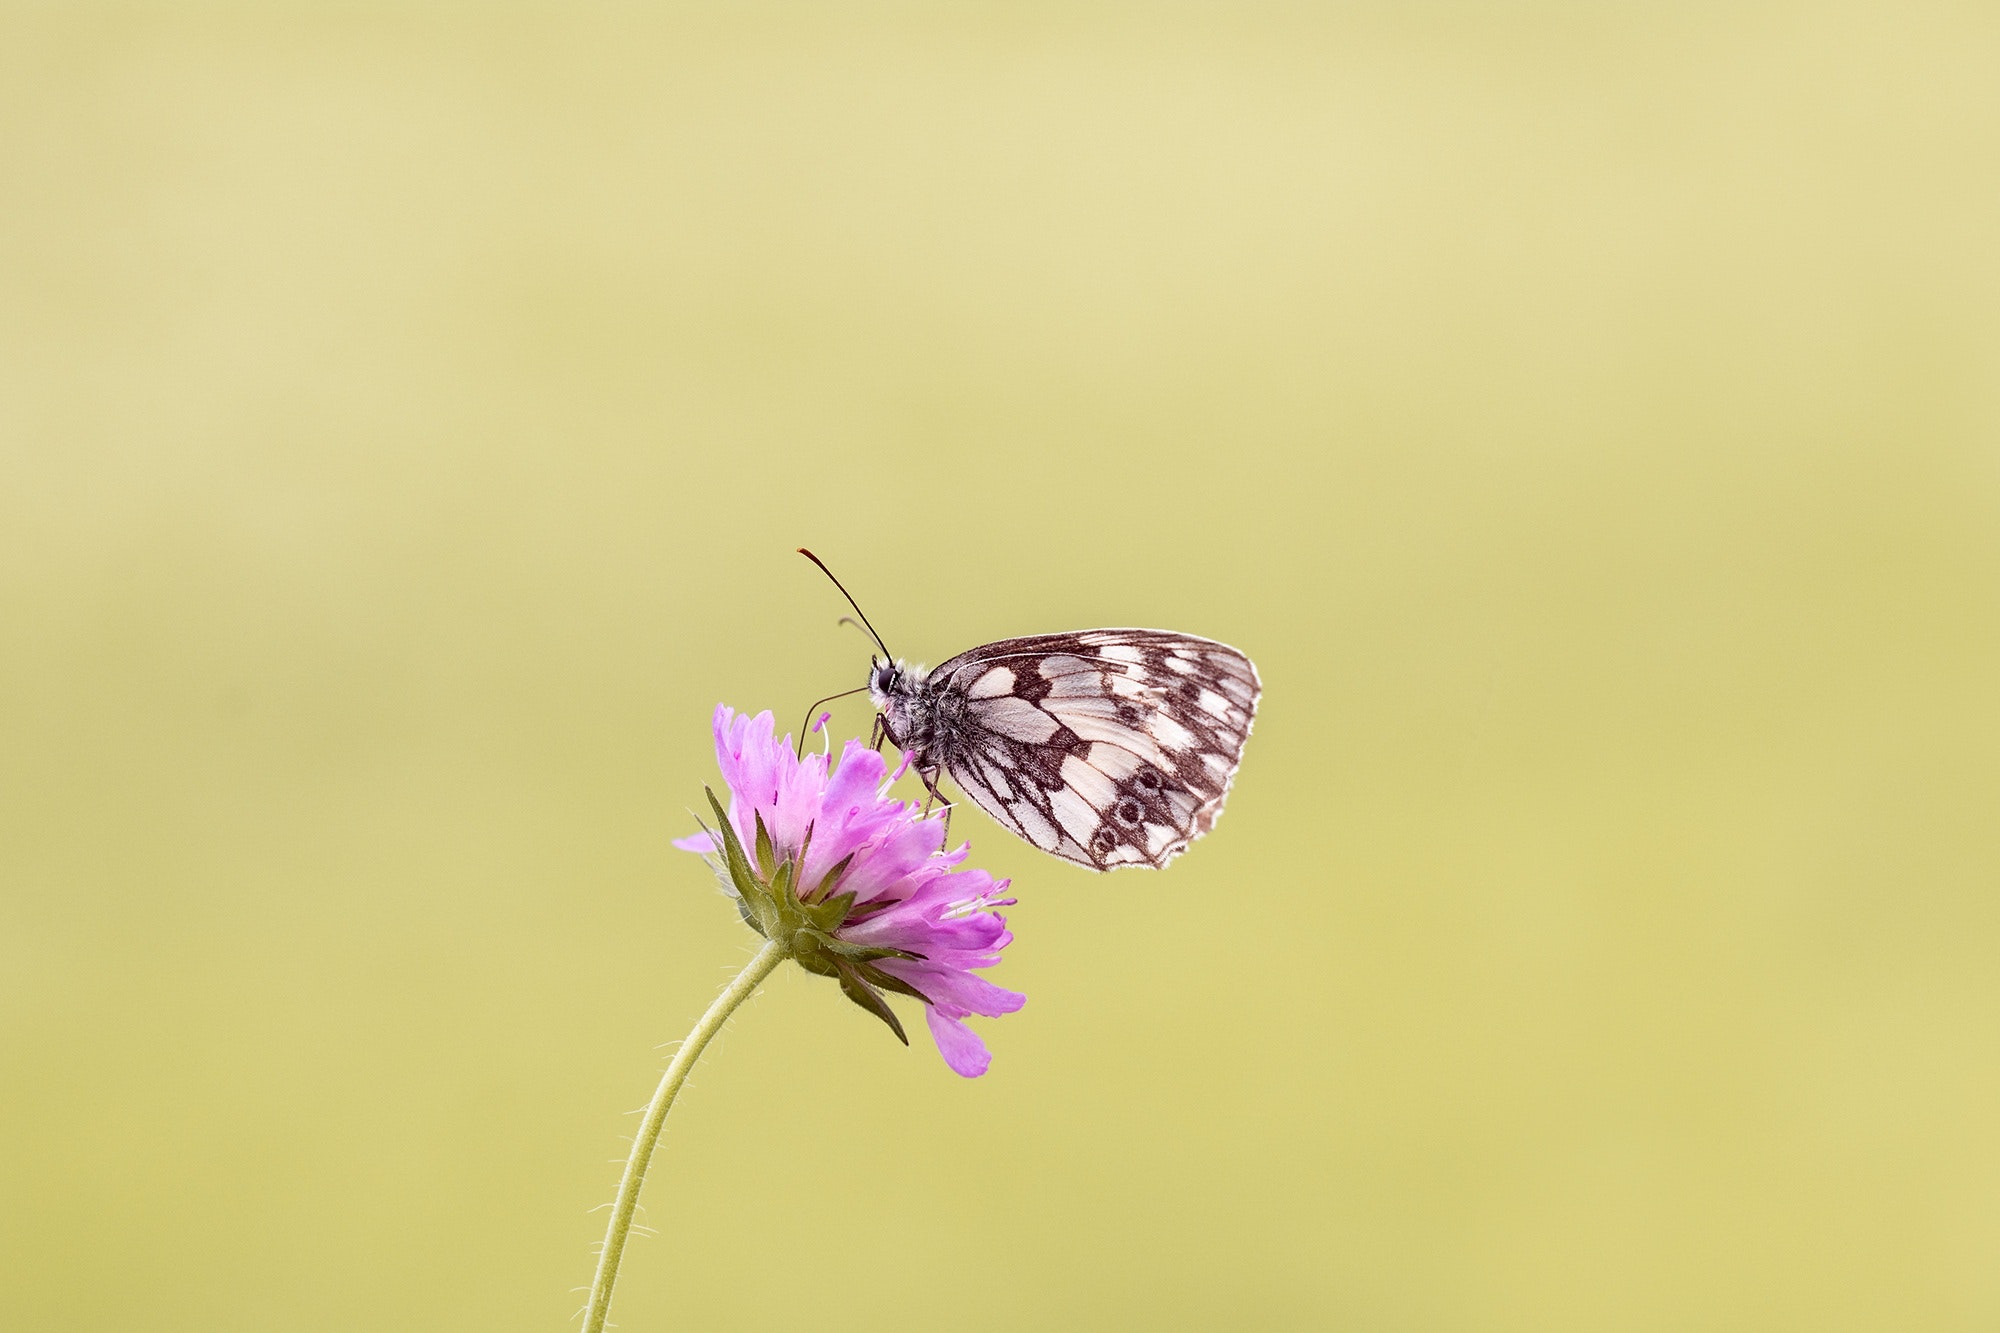 Brown Butterfly Perched on Pink Flower, Bloom, Blossom, Butterfly, Flora, HQ Photo